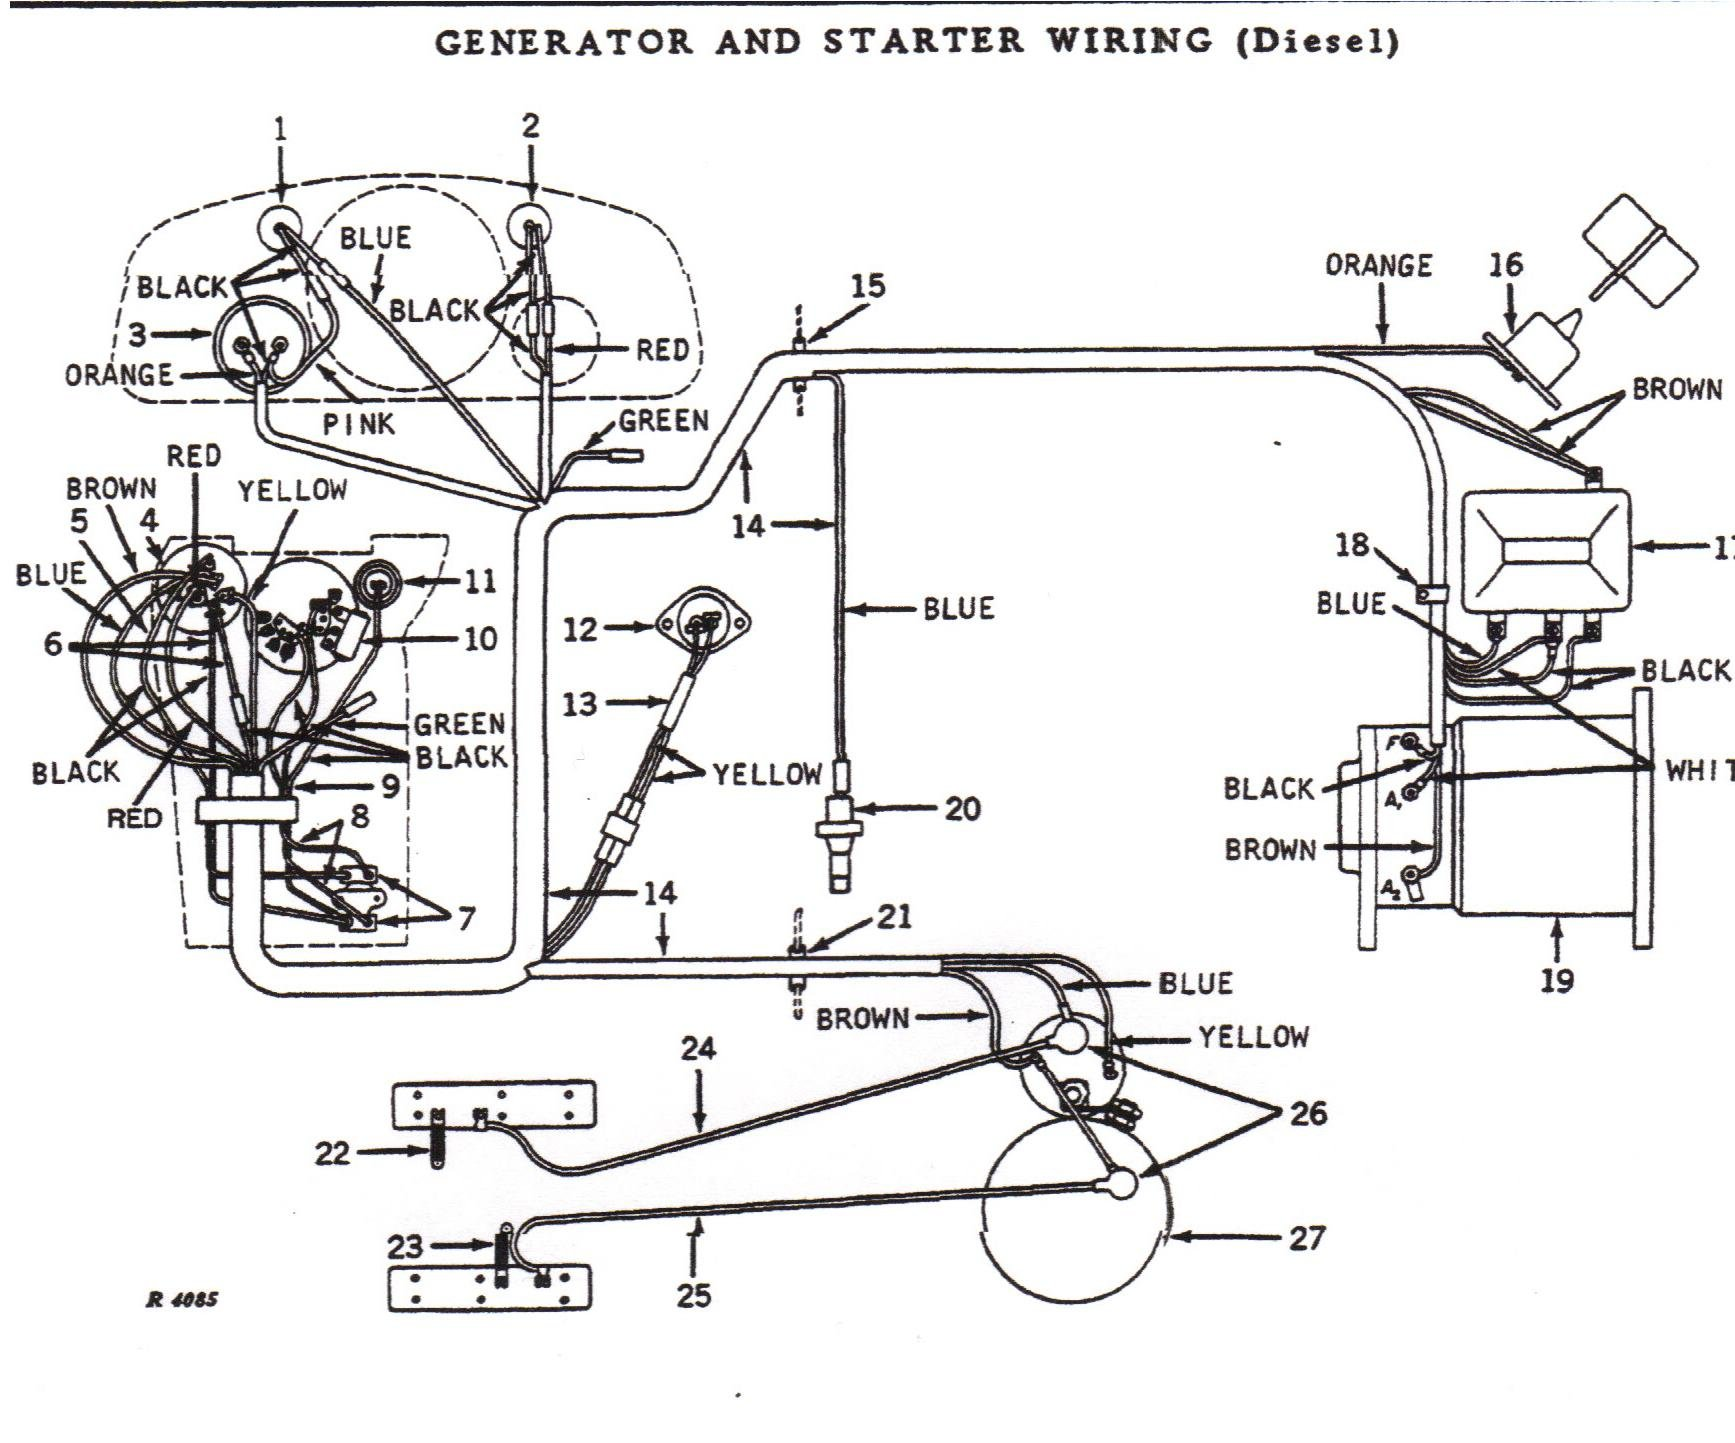 Ford 2 Tractor Wiring Diagram moreover Diagram For 2000 Ford Tractor Transmission further 15504 212 John Deere Wiring Diagram together with Tubeframe as well Mower Deck 54 Inch. on electrical diagrams for kubota tractors